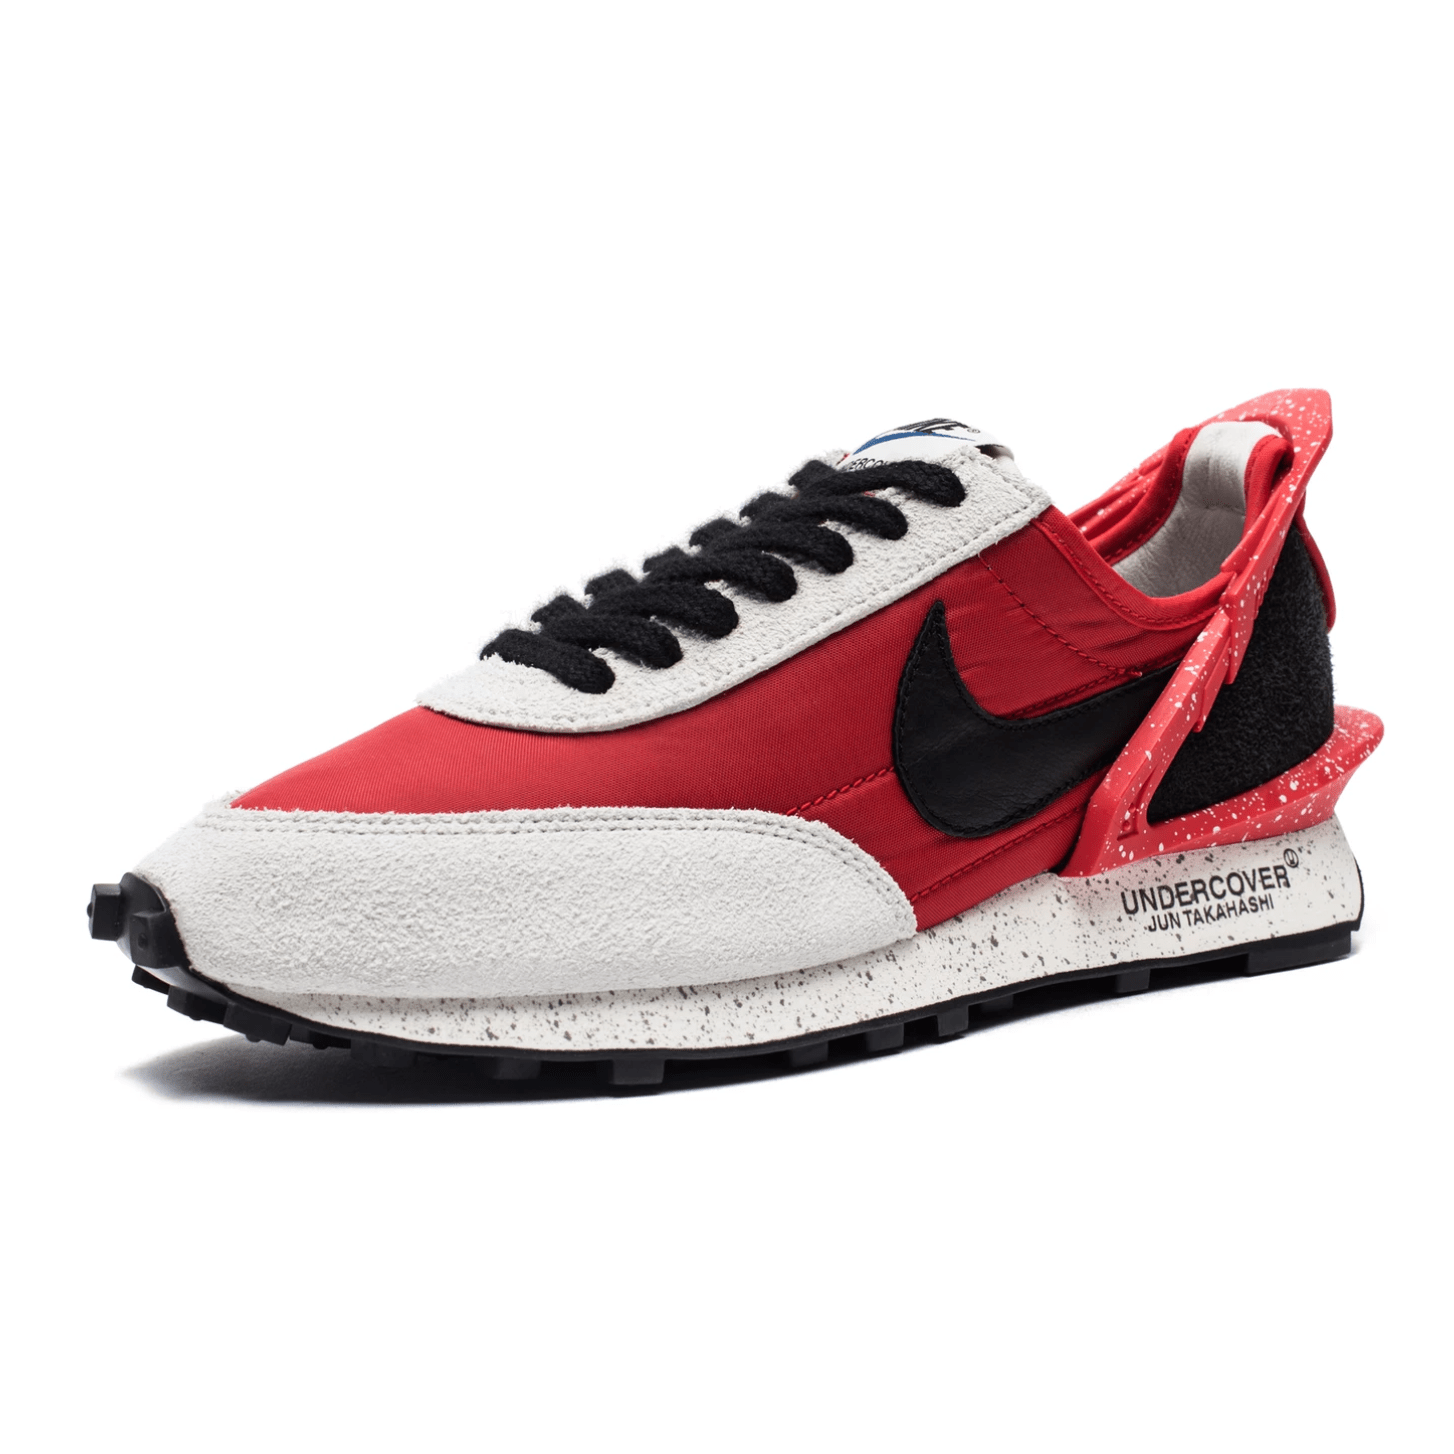 Undercover x Nike Daybreak 'Red'